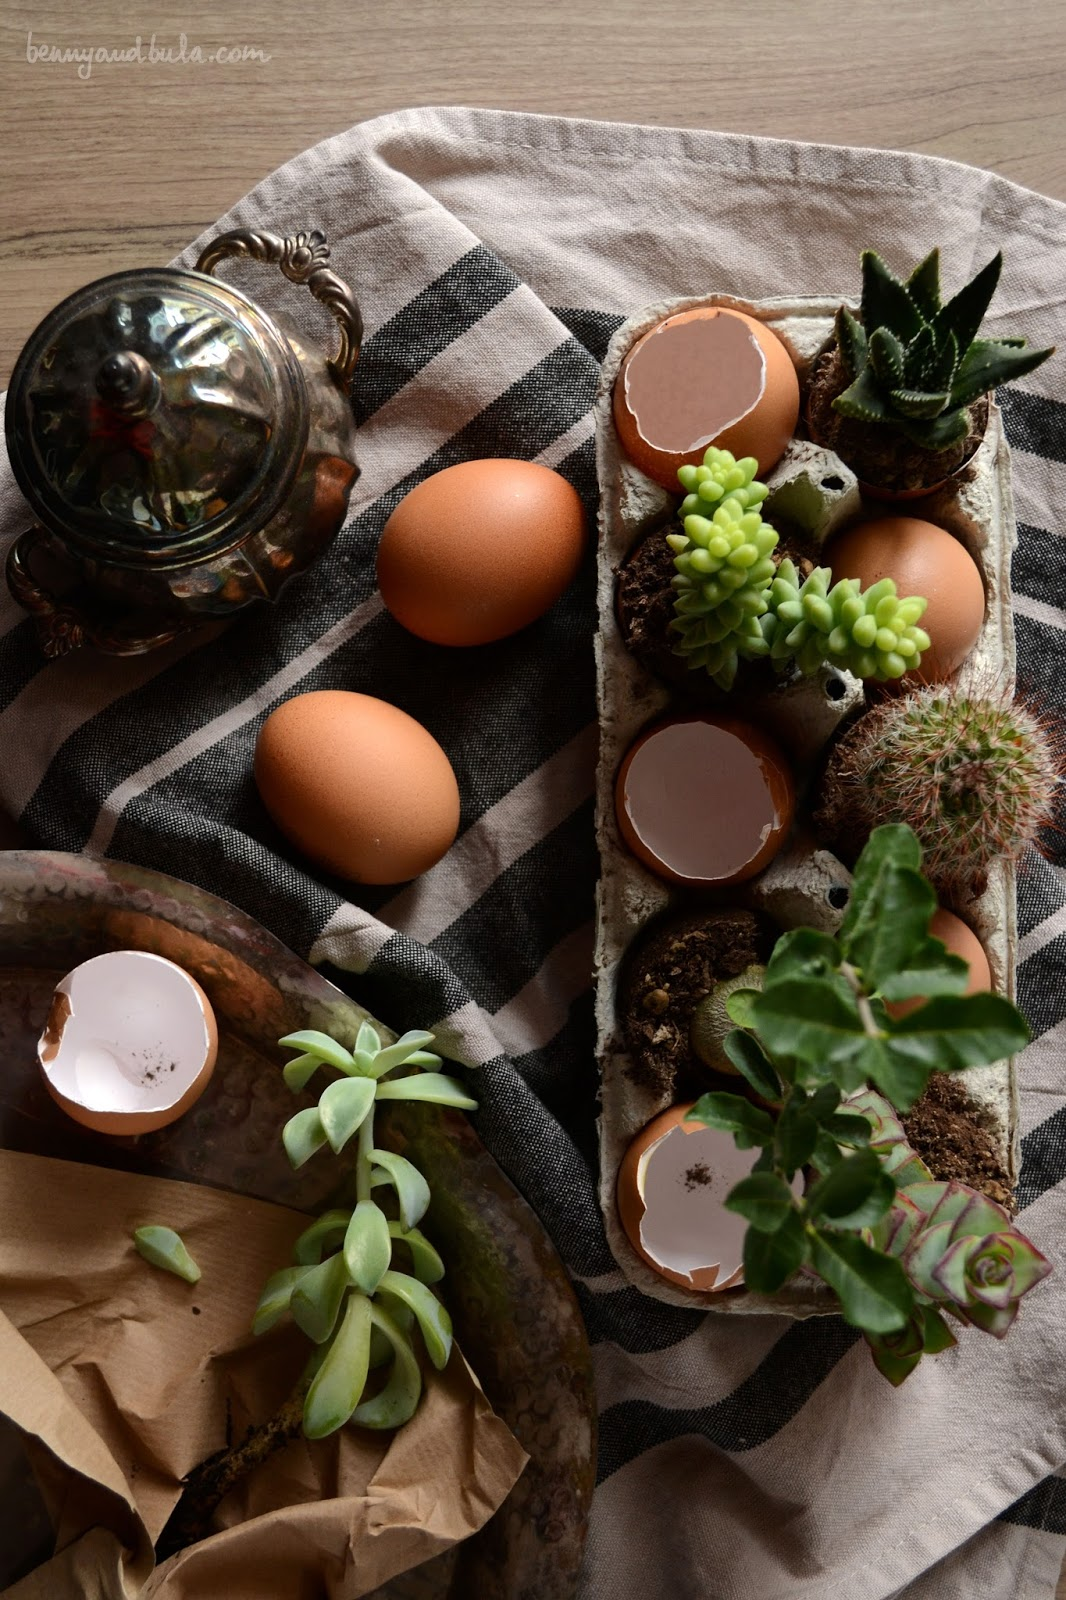 idee centrotavola di pasqua / easter table setting ideas